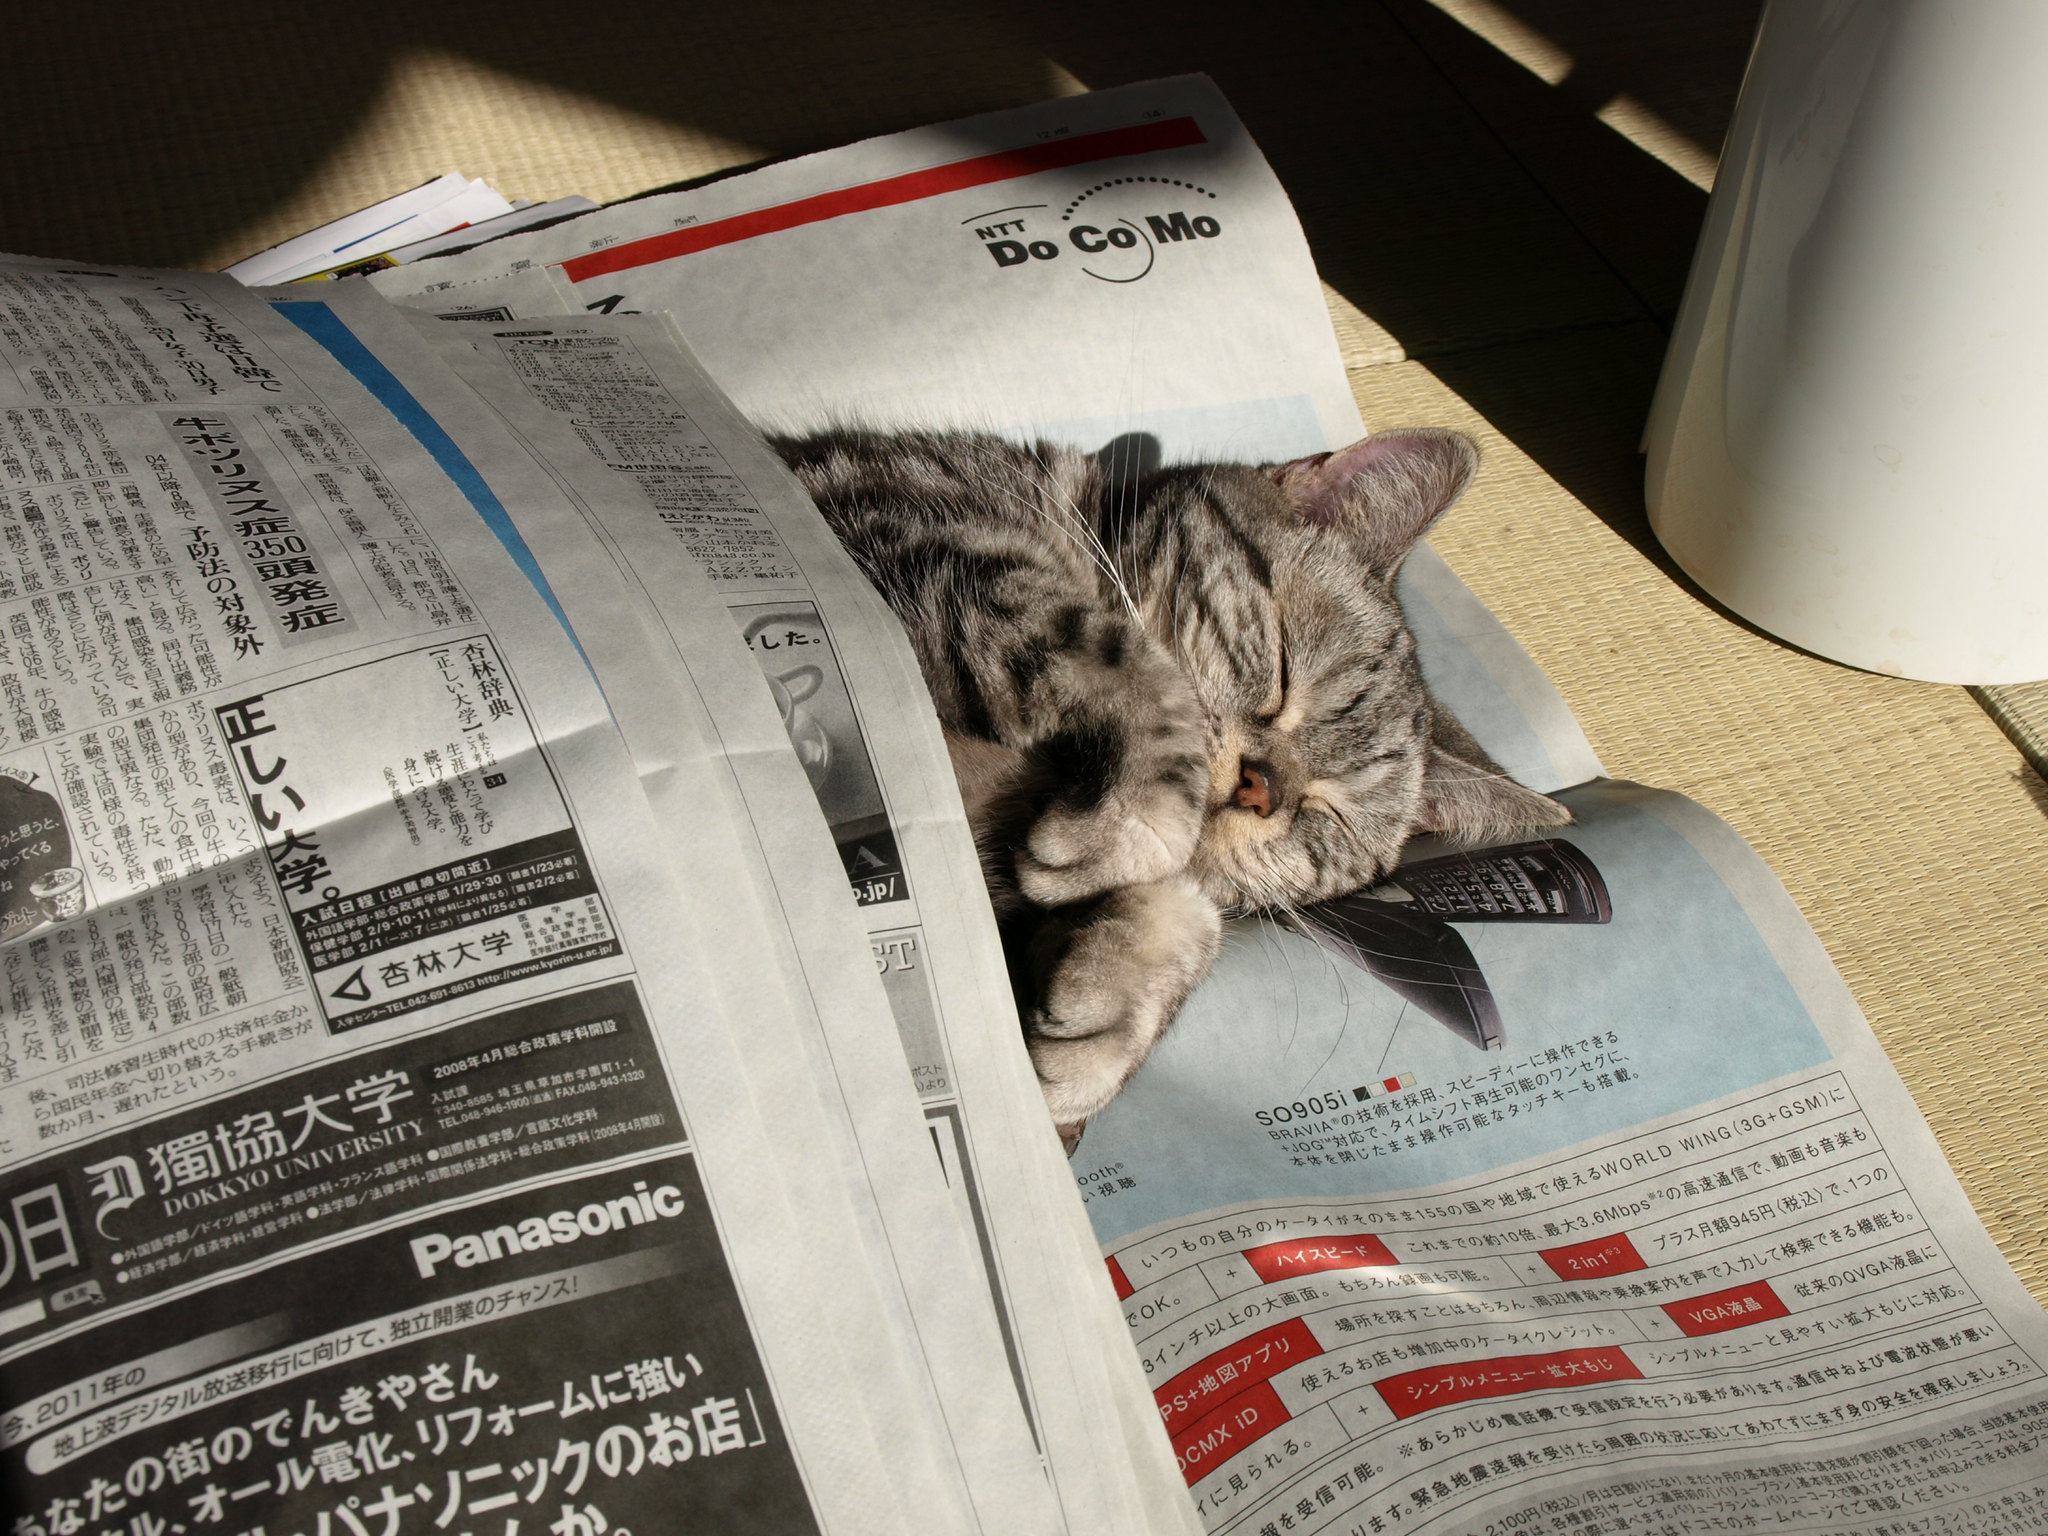 A grey tabby cat curled up and sleeping between newspaper sheets.